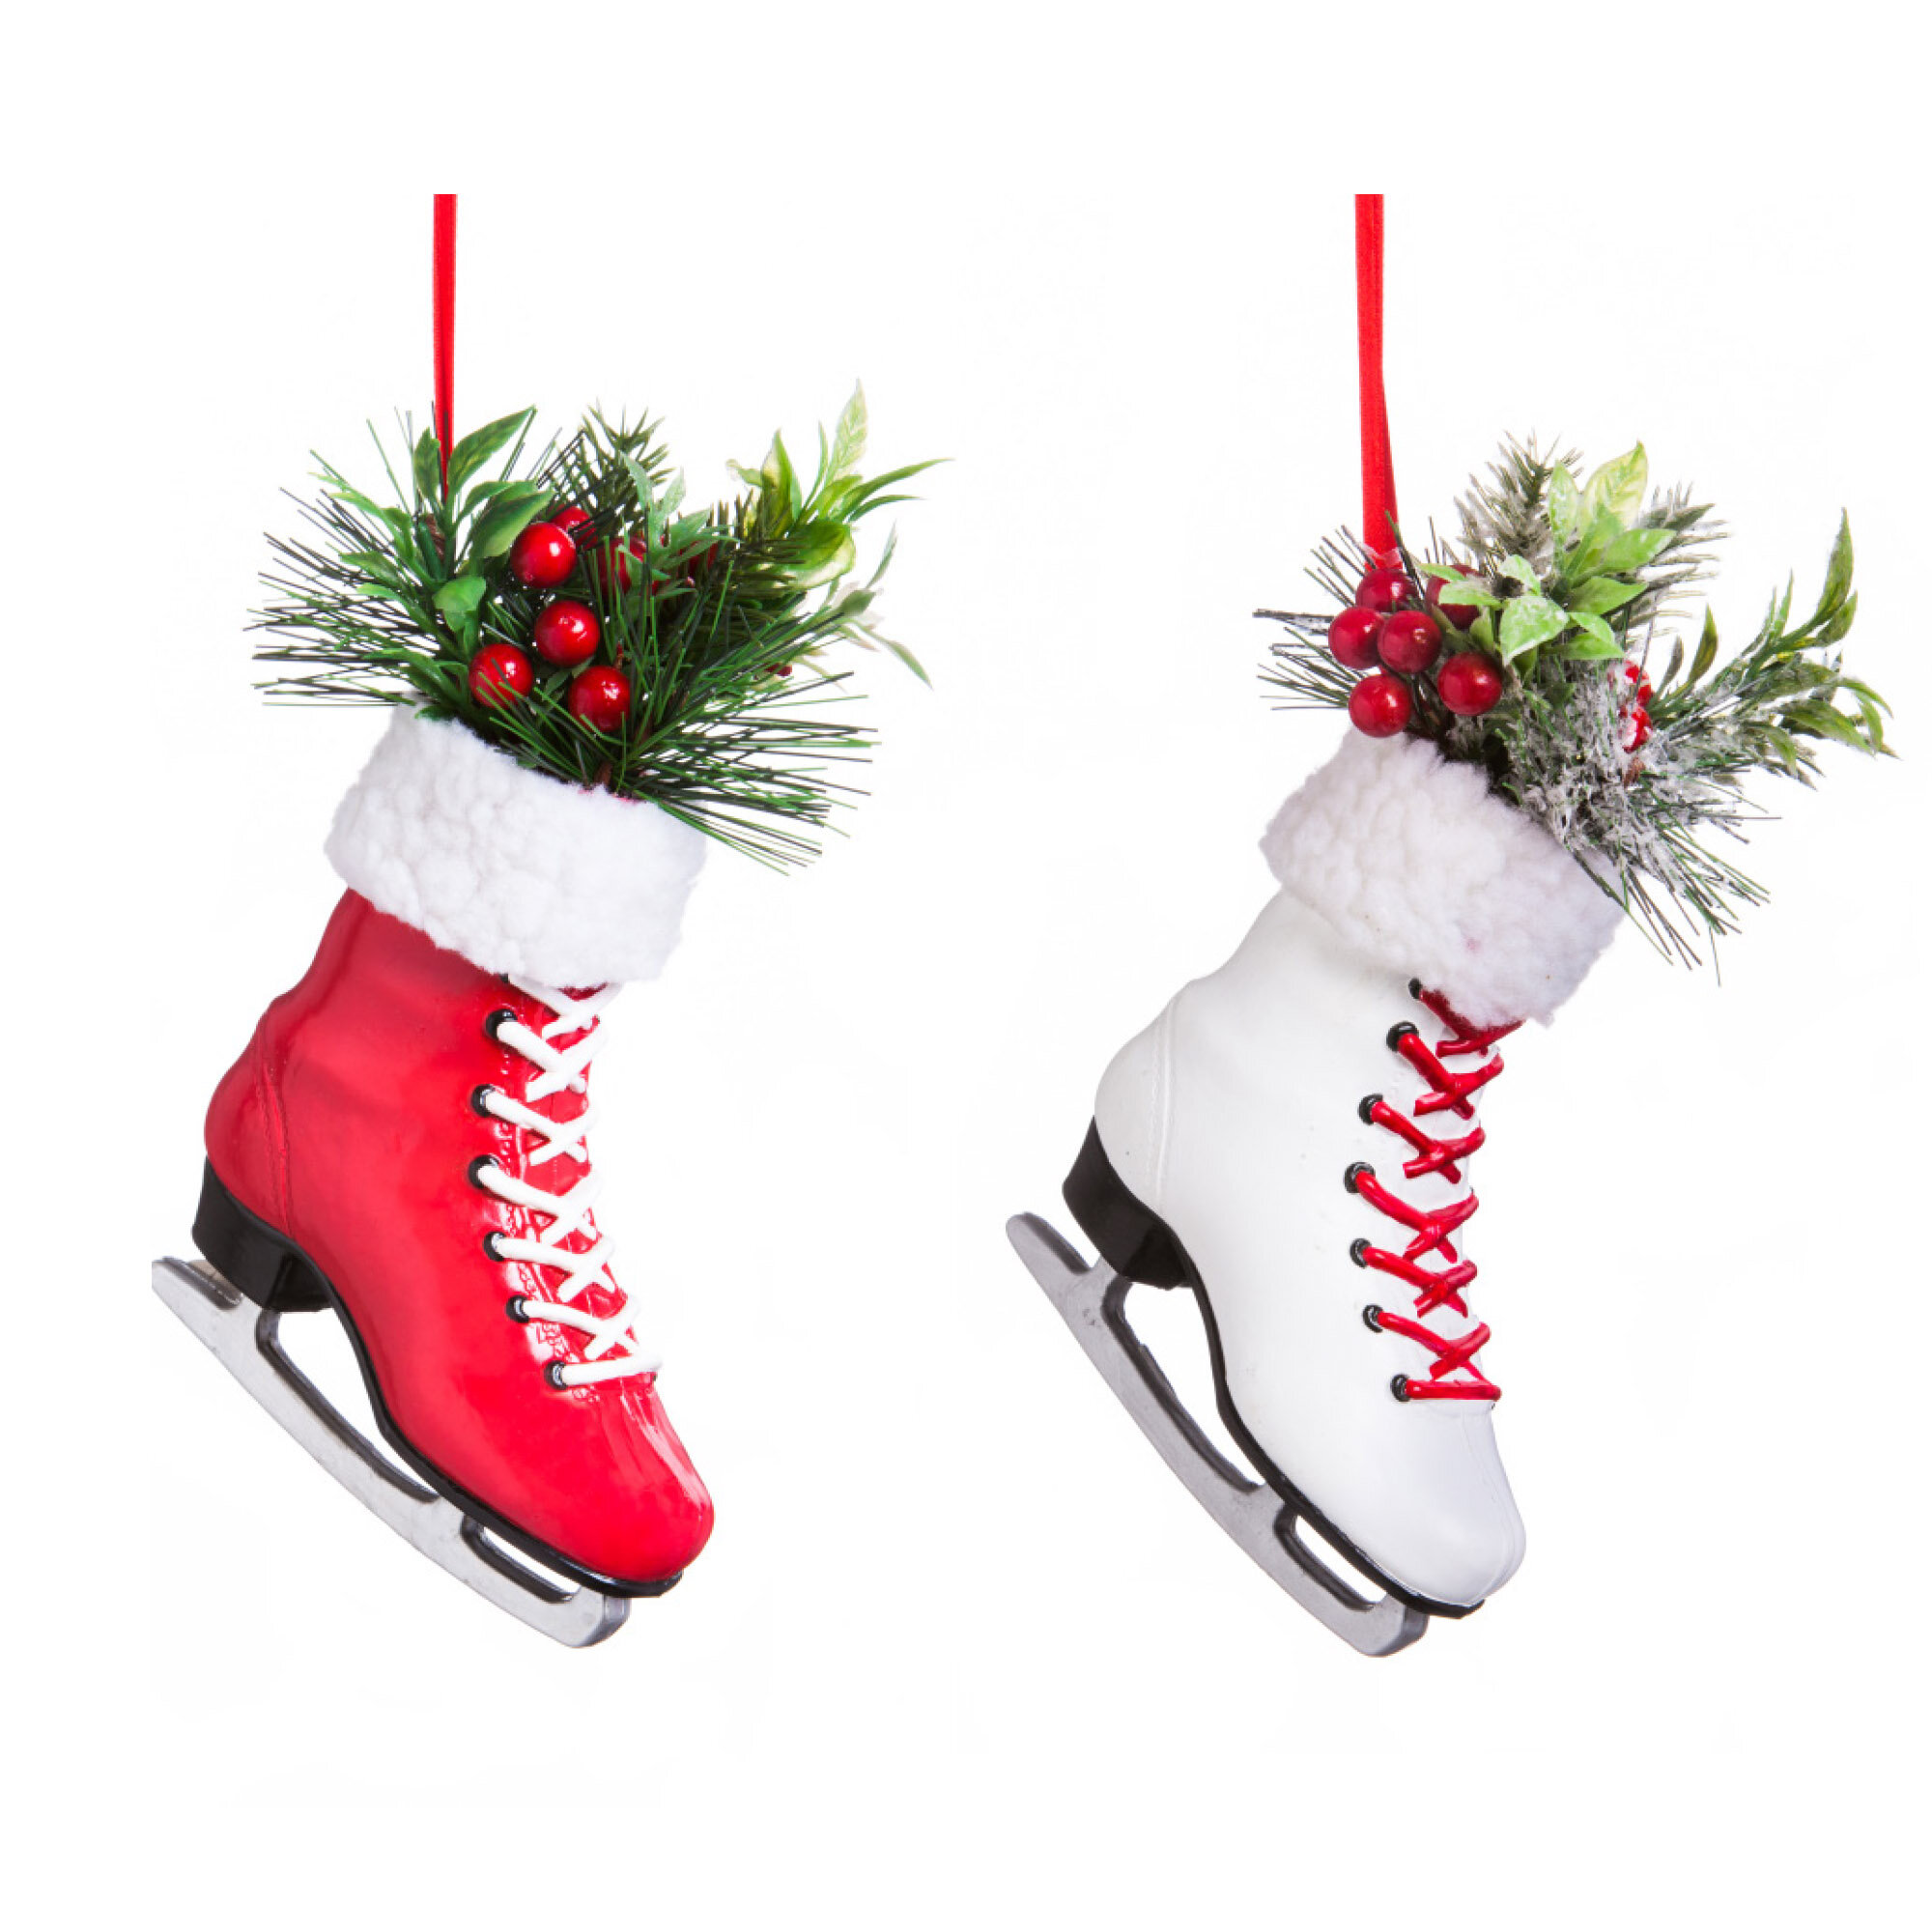 Cypress Plastic Ice Skate Ornament Accessory Set & Reviews | Wayfair